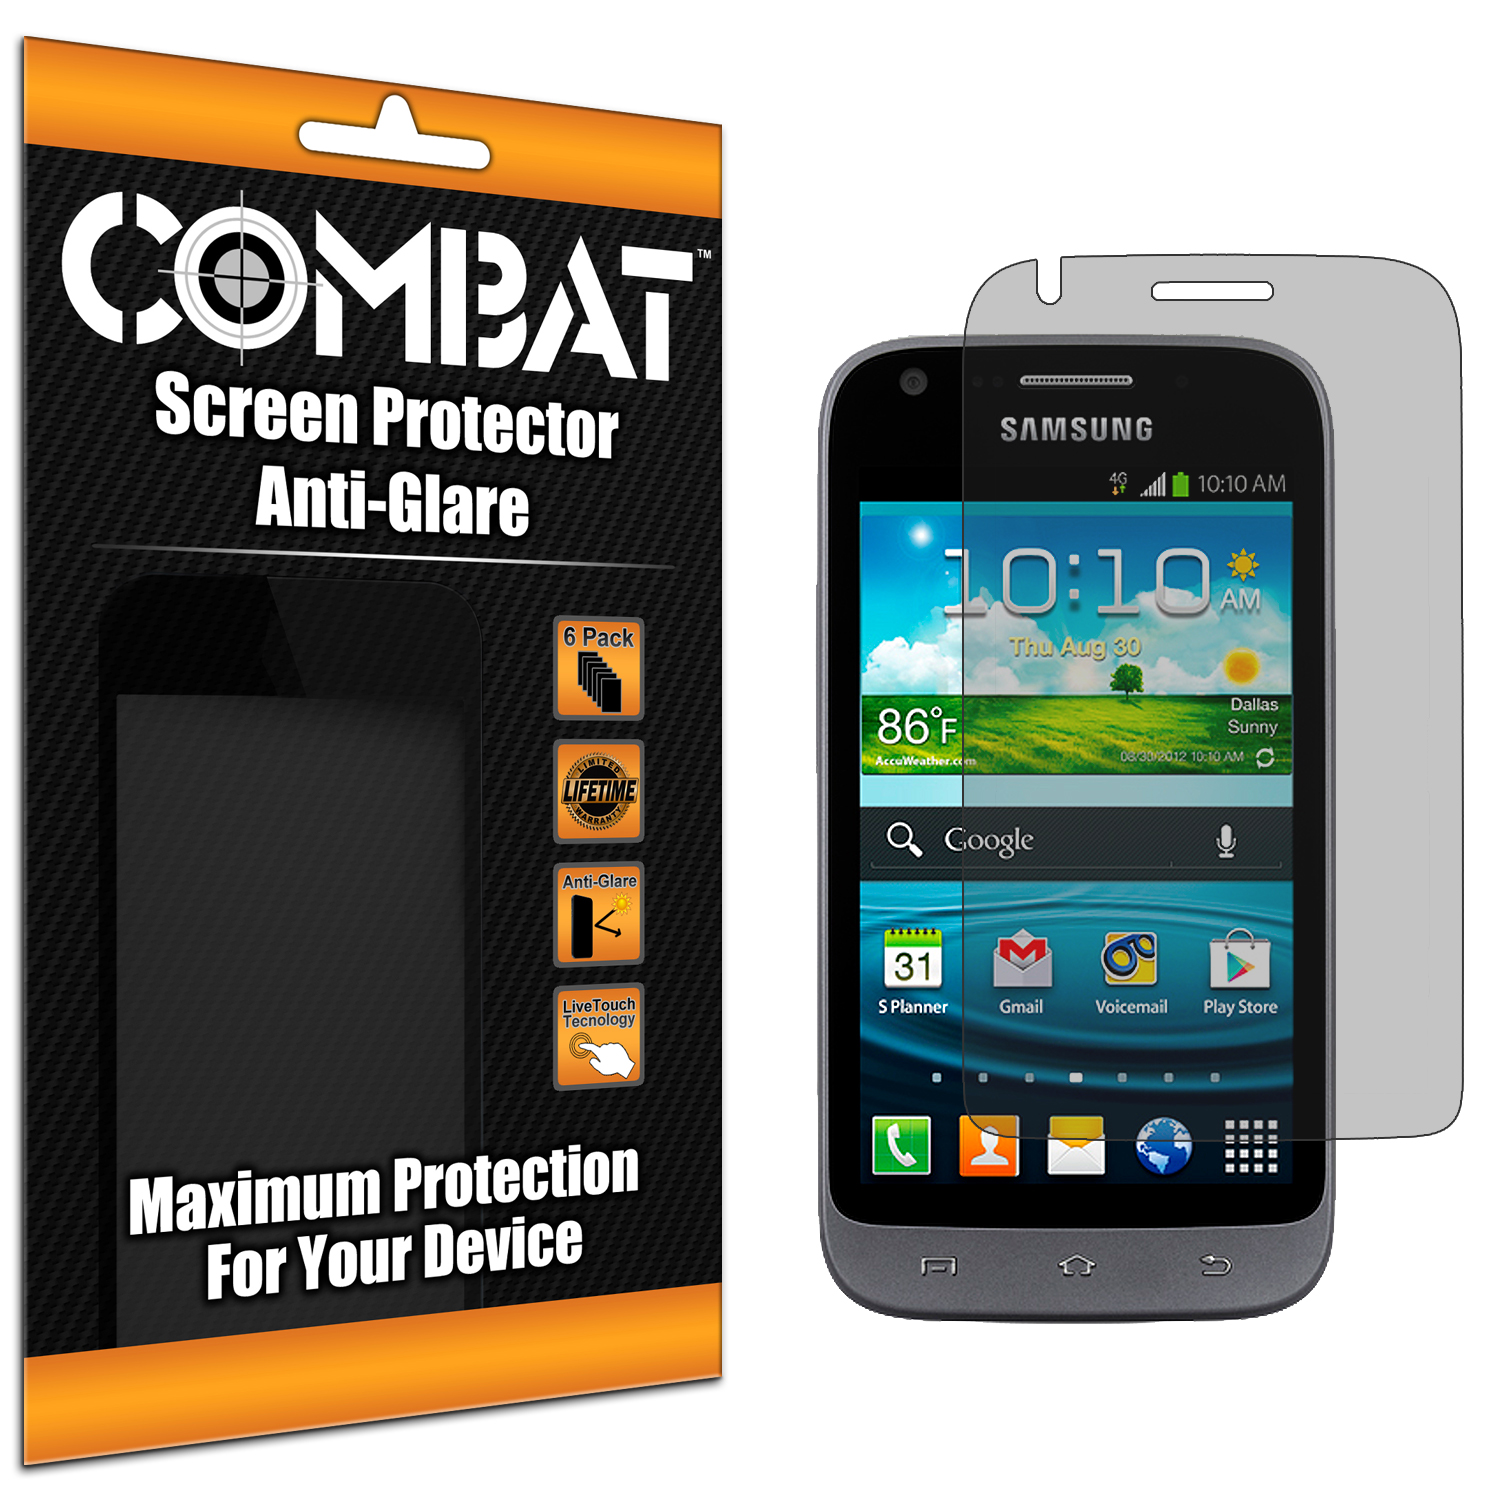 Samsung Galaxy Victory 4G Combat 6 Pack Anti-Glare Matte Screen Protector